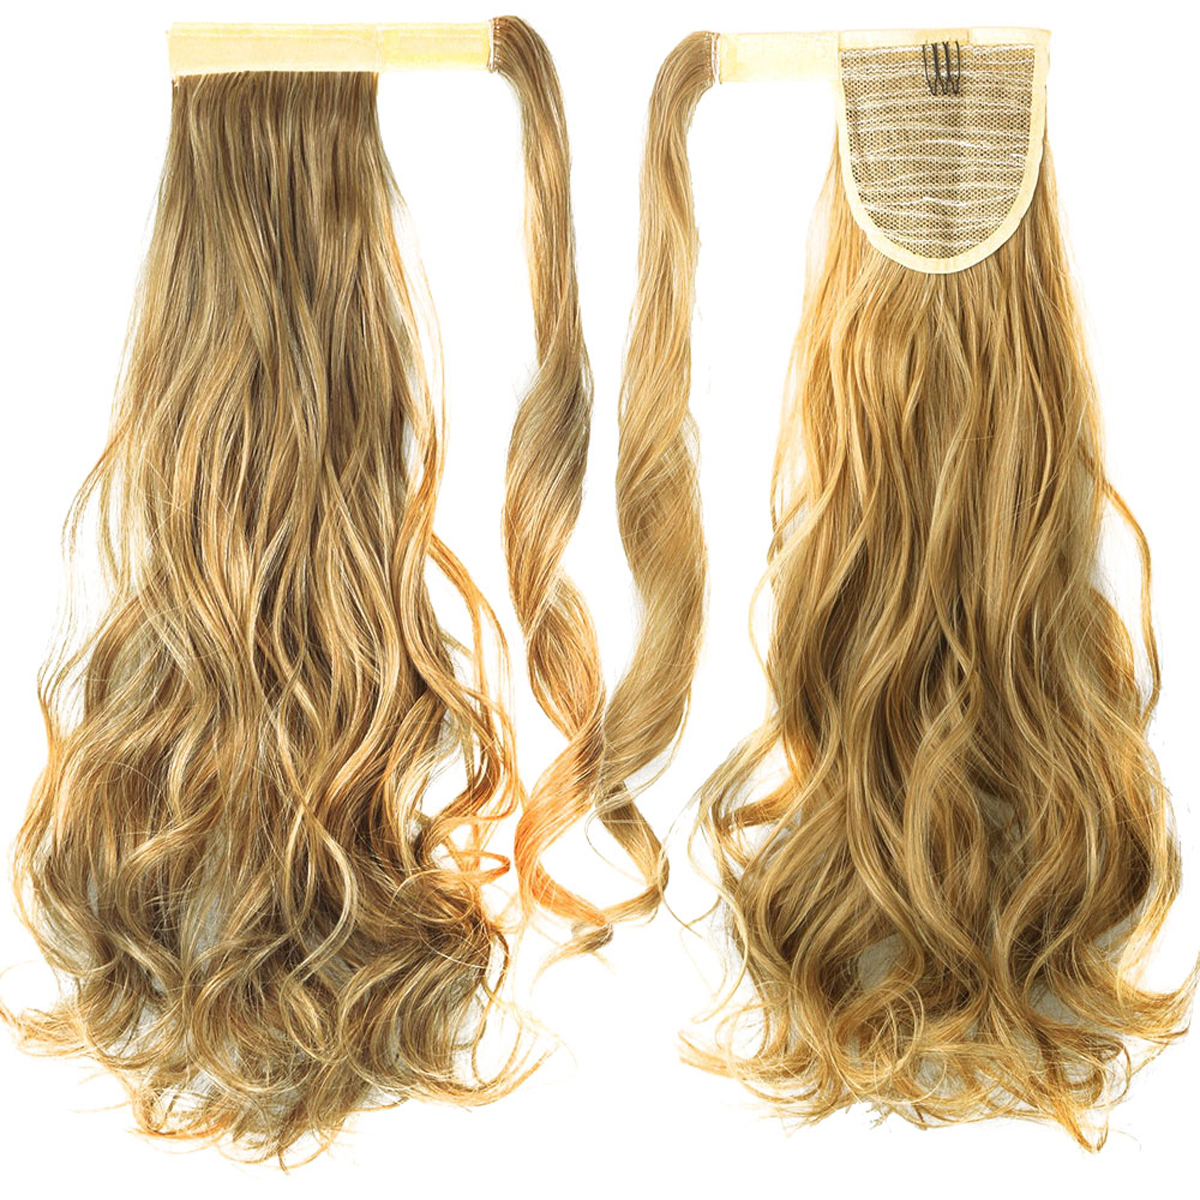 Design Ideas for Ponytail hair Extensions Wigs